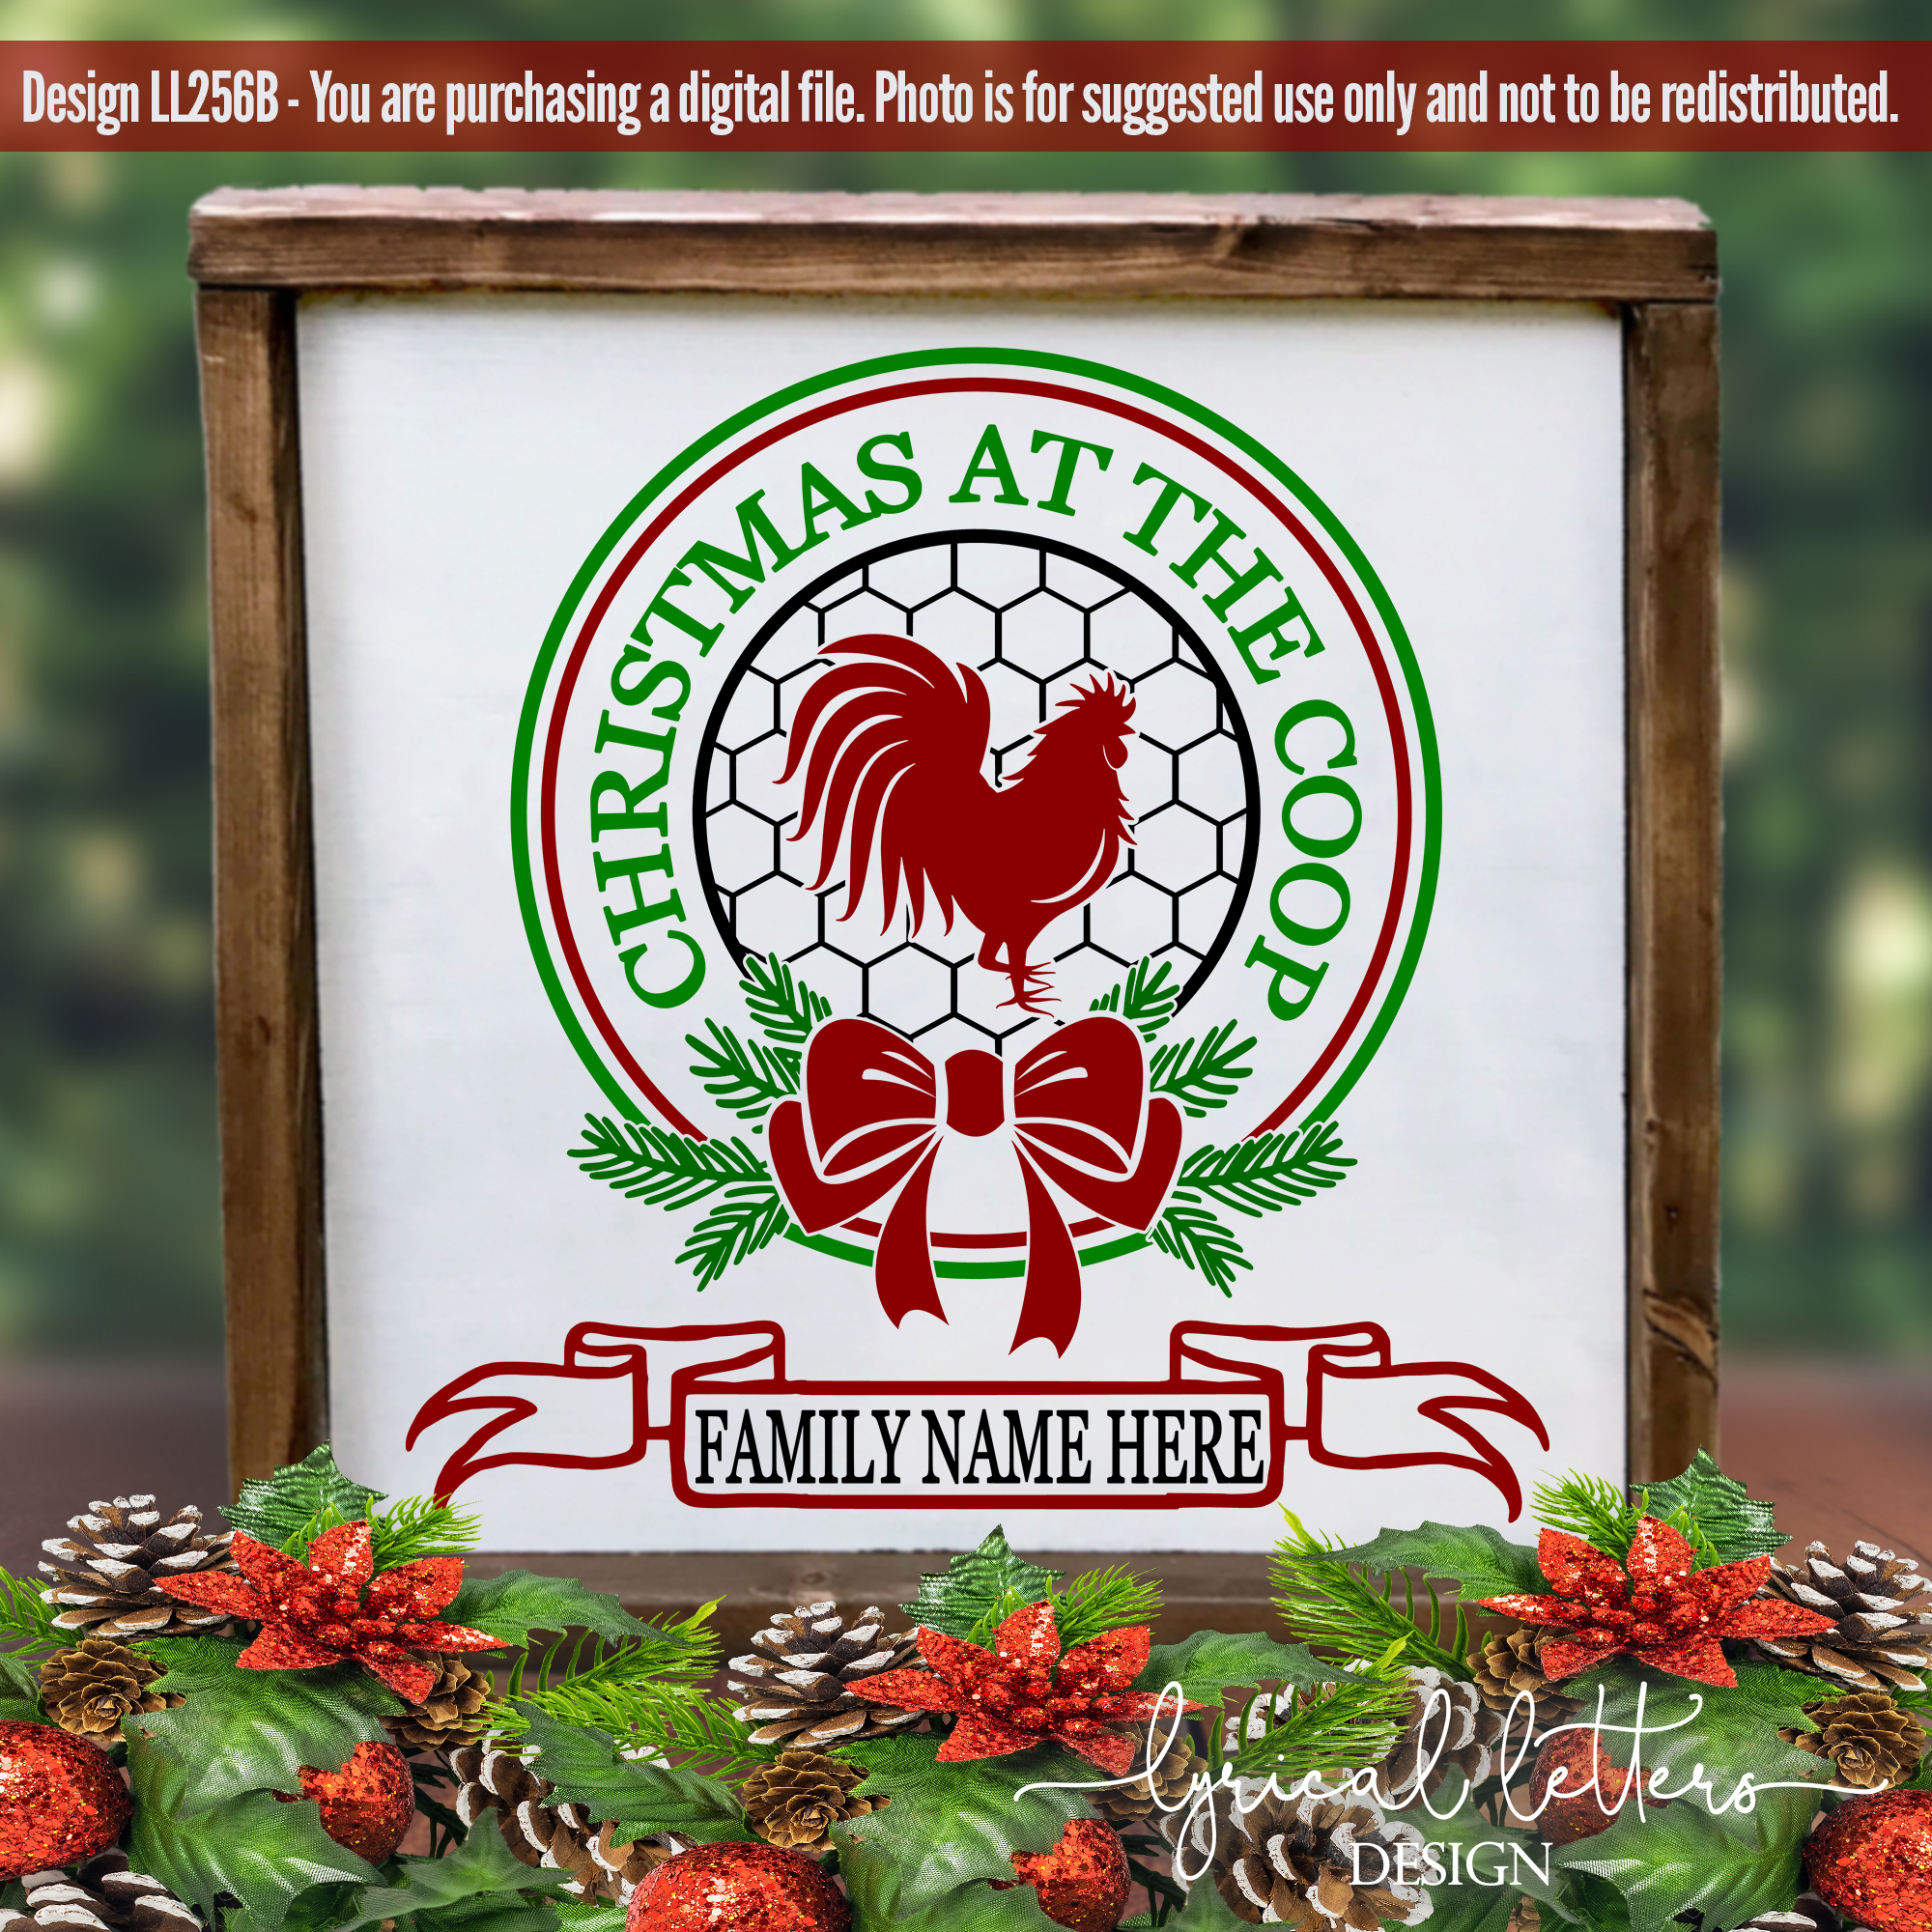 Farmhouse Christmas at the Coop SVG DXF LL256B example image 2